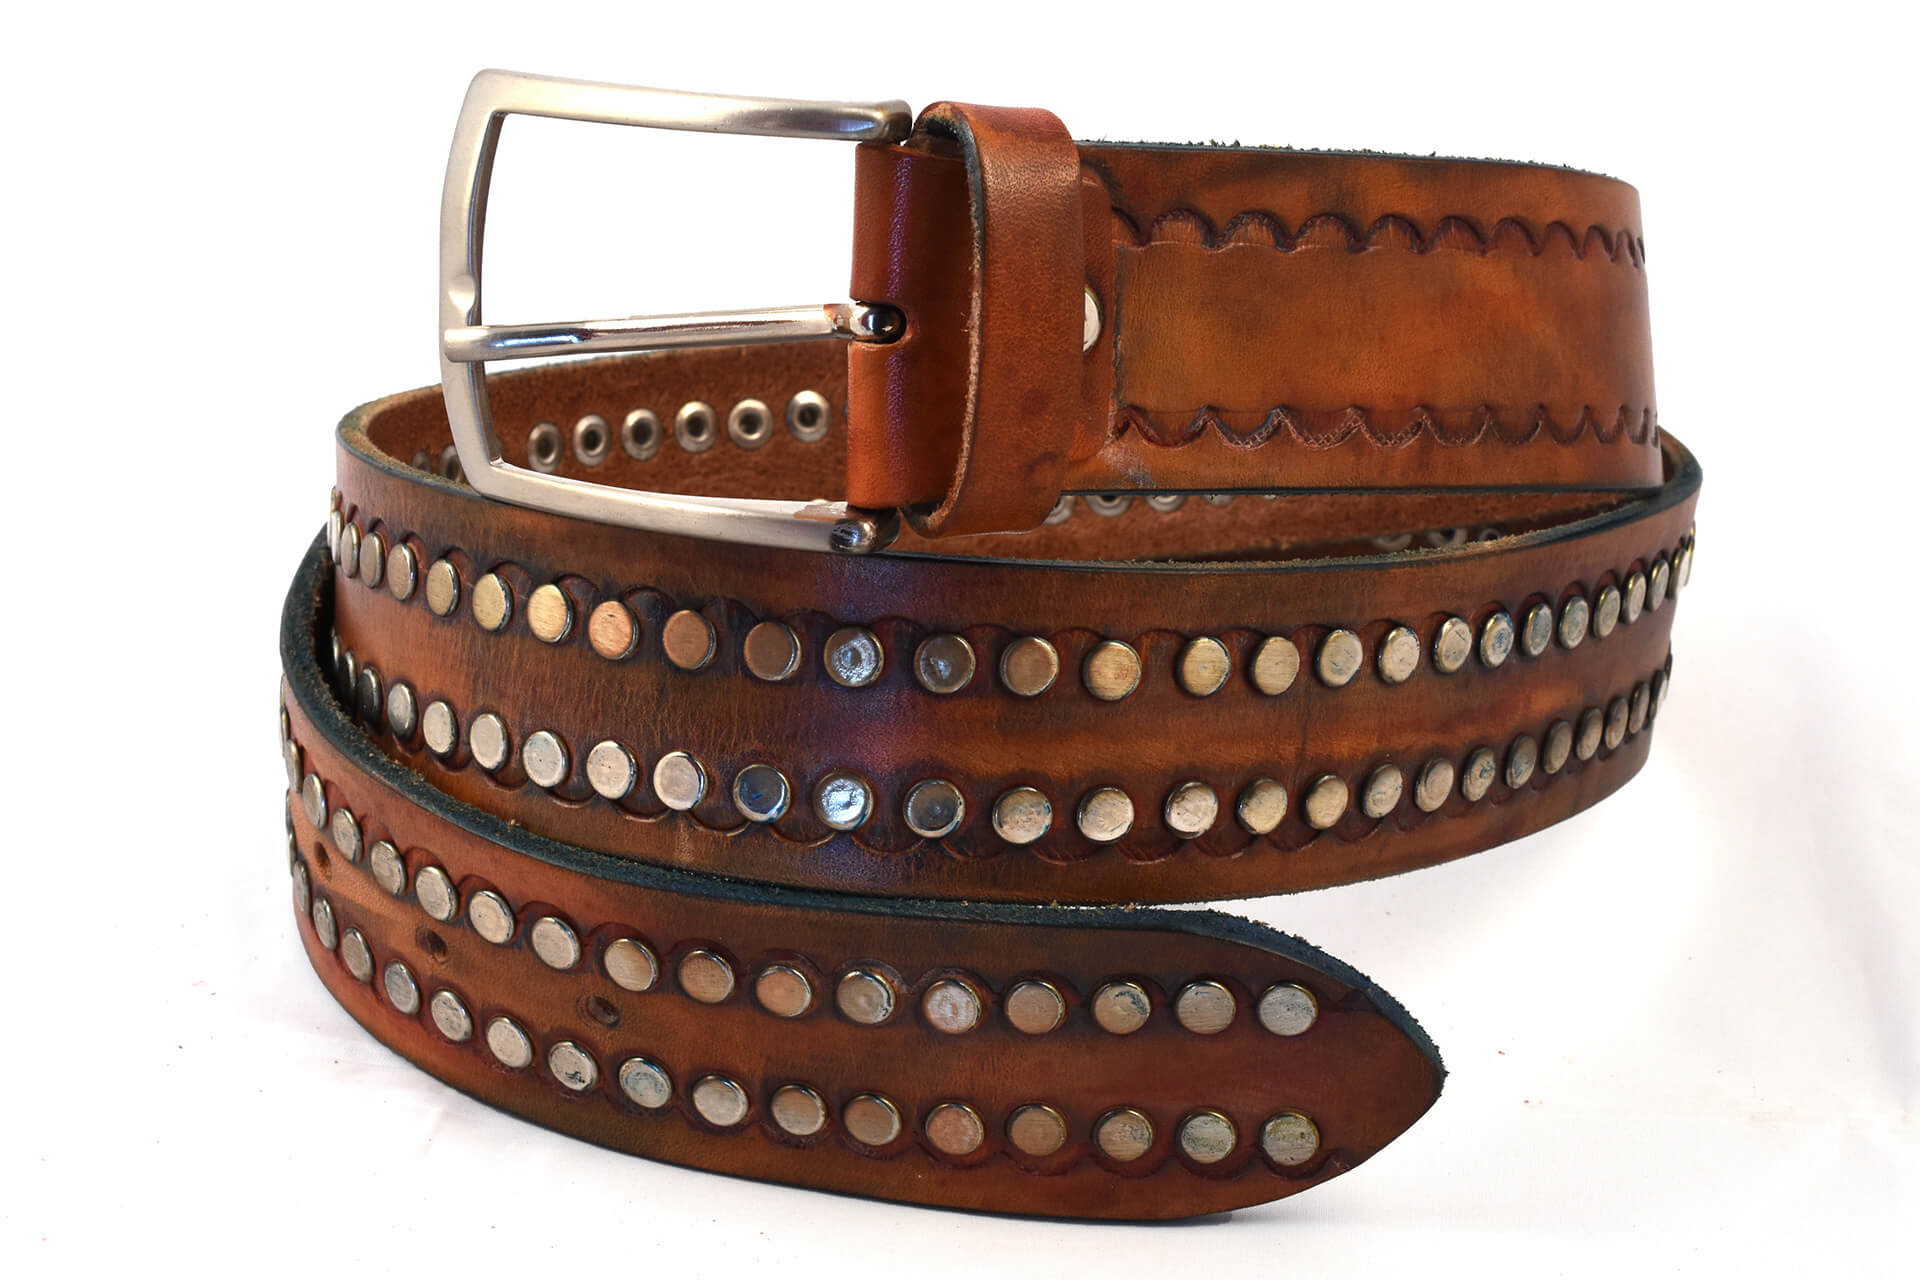 Carved leather belt with studs